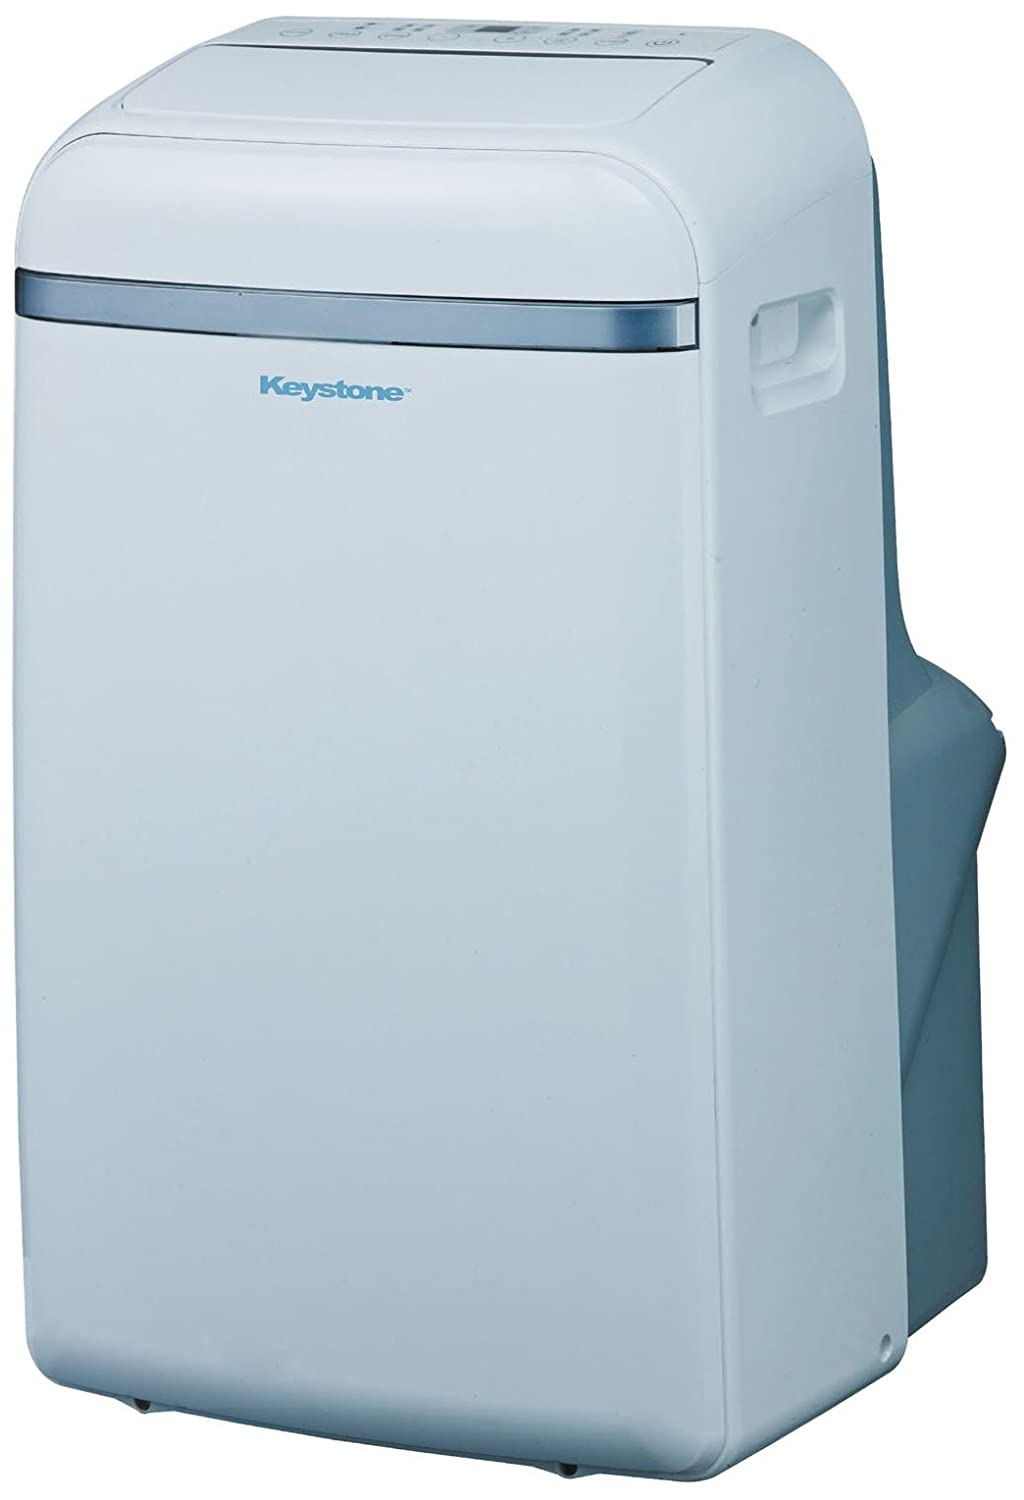 Keystone KSTAP12B 115V Portable Air Conditioner with